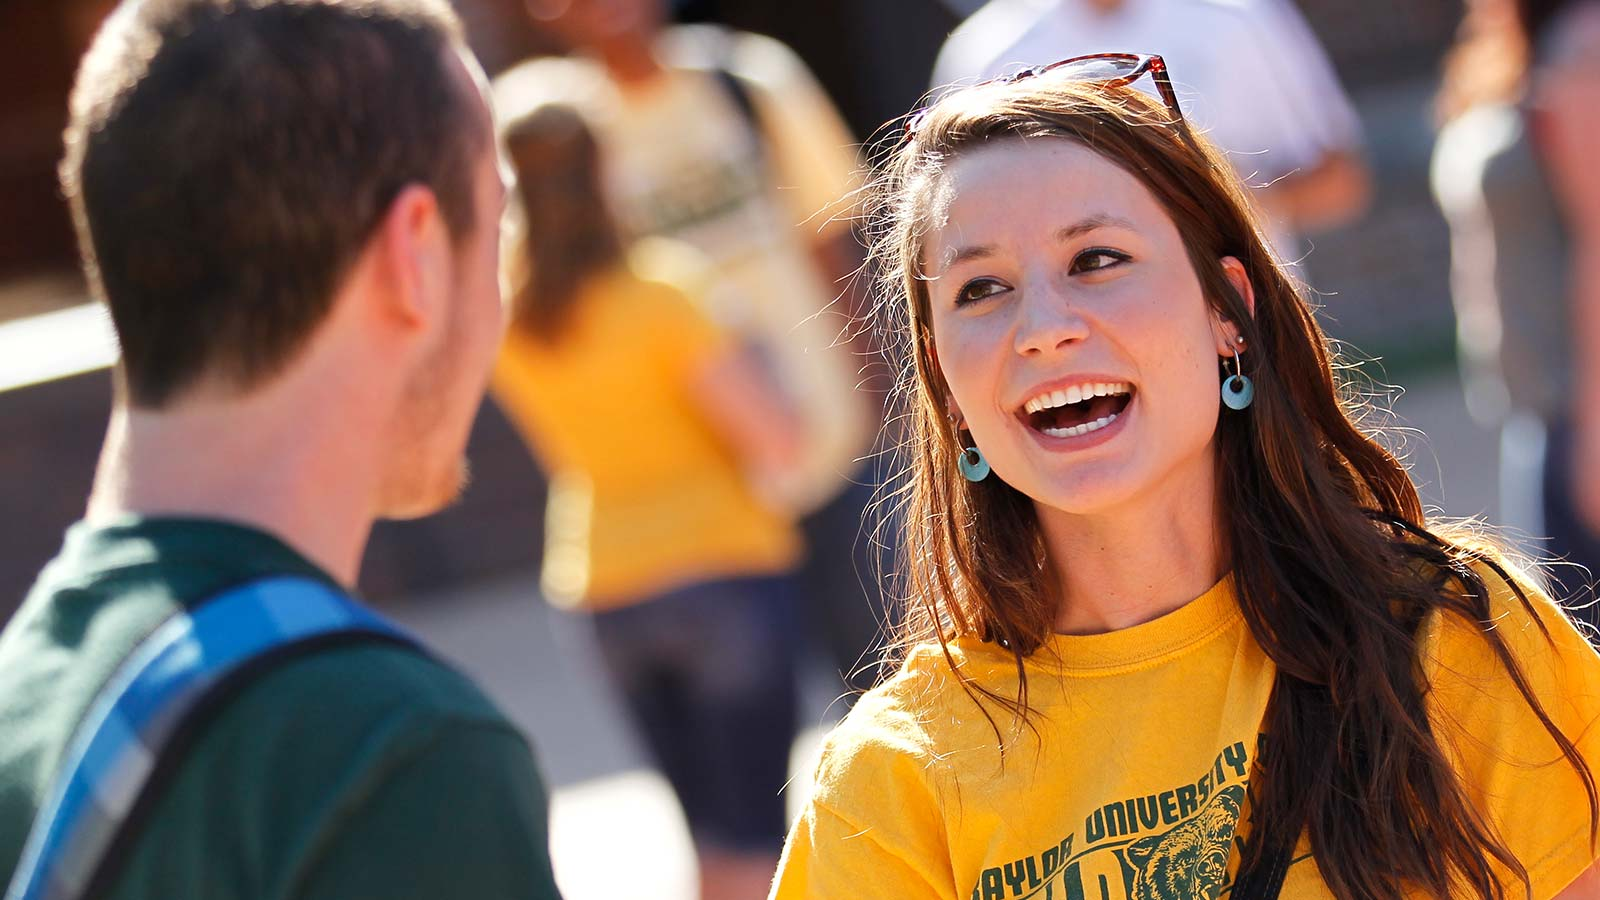 Baylor is large enough to offer the academic challenge students need and small enough to care about each student as an individual.